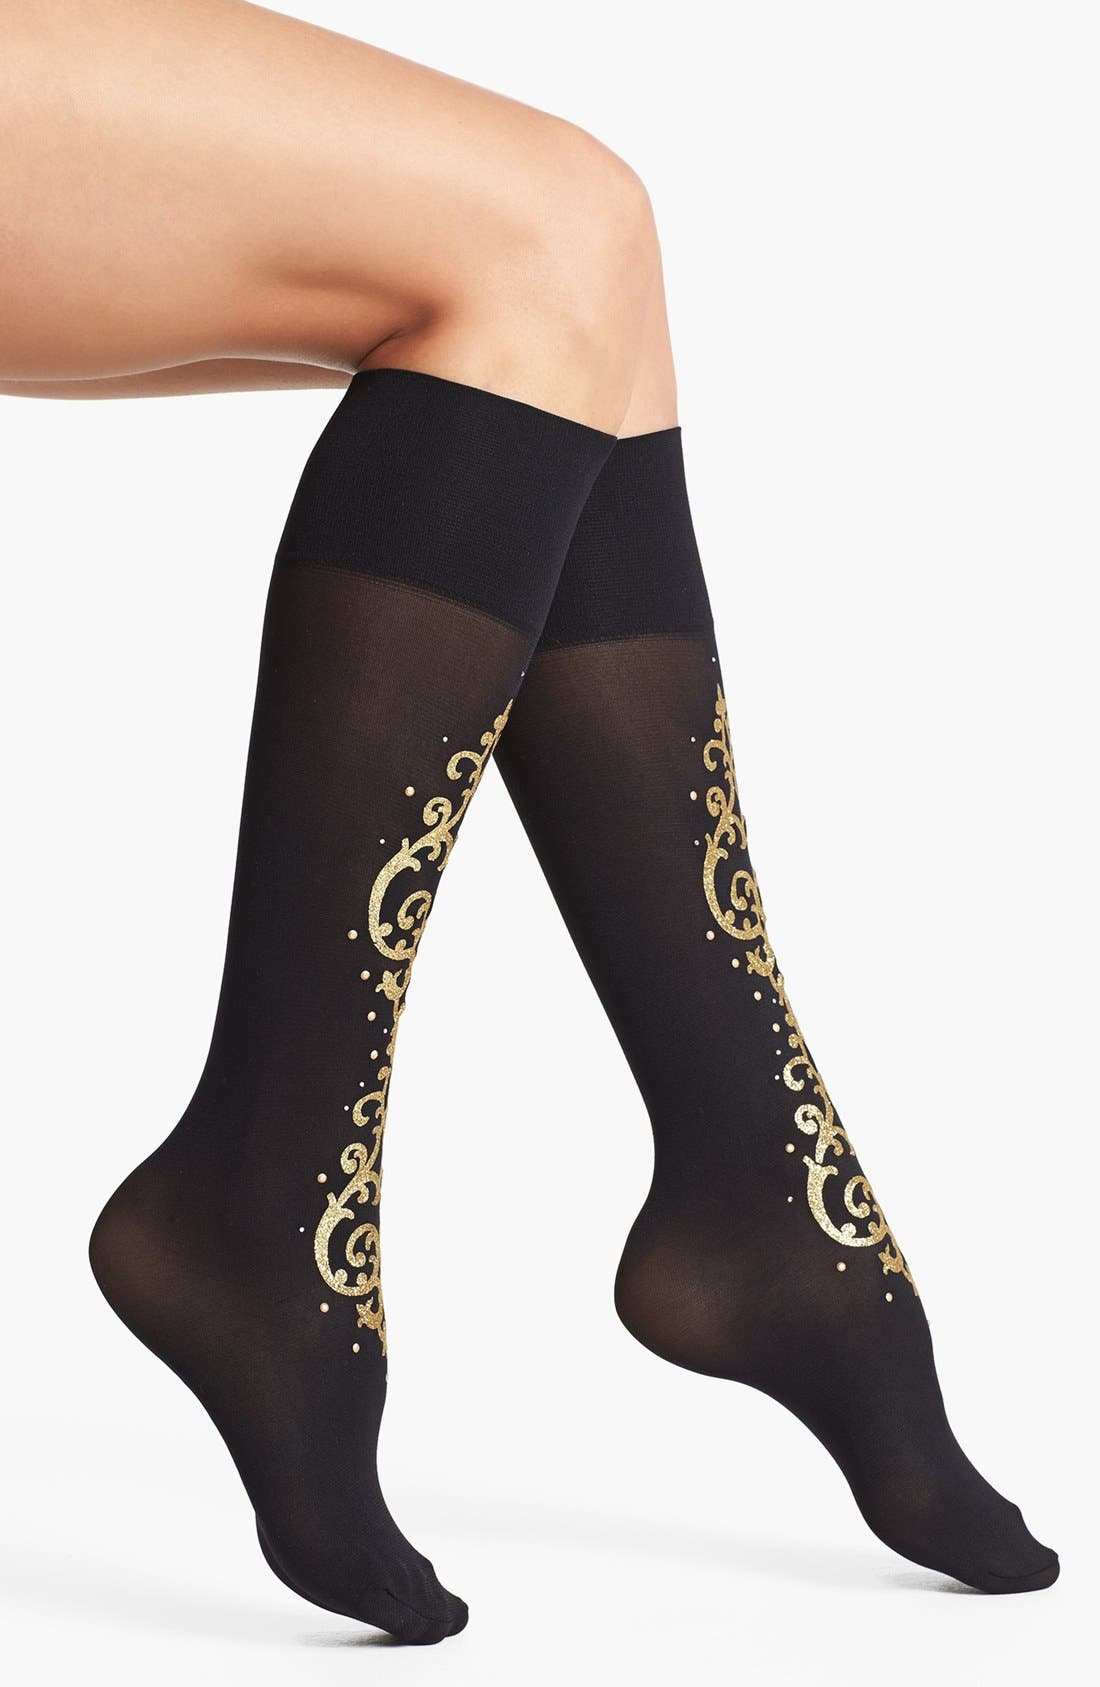 Alternate Image 1 Selected - Pretty Polly 'Baroque' Embellished Knee High Socks